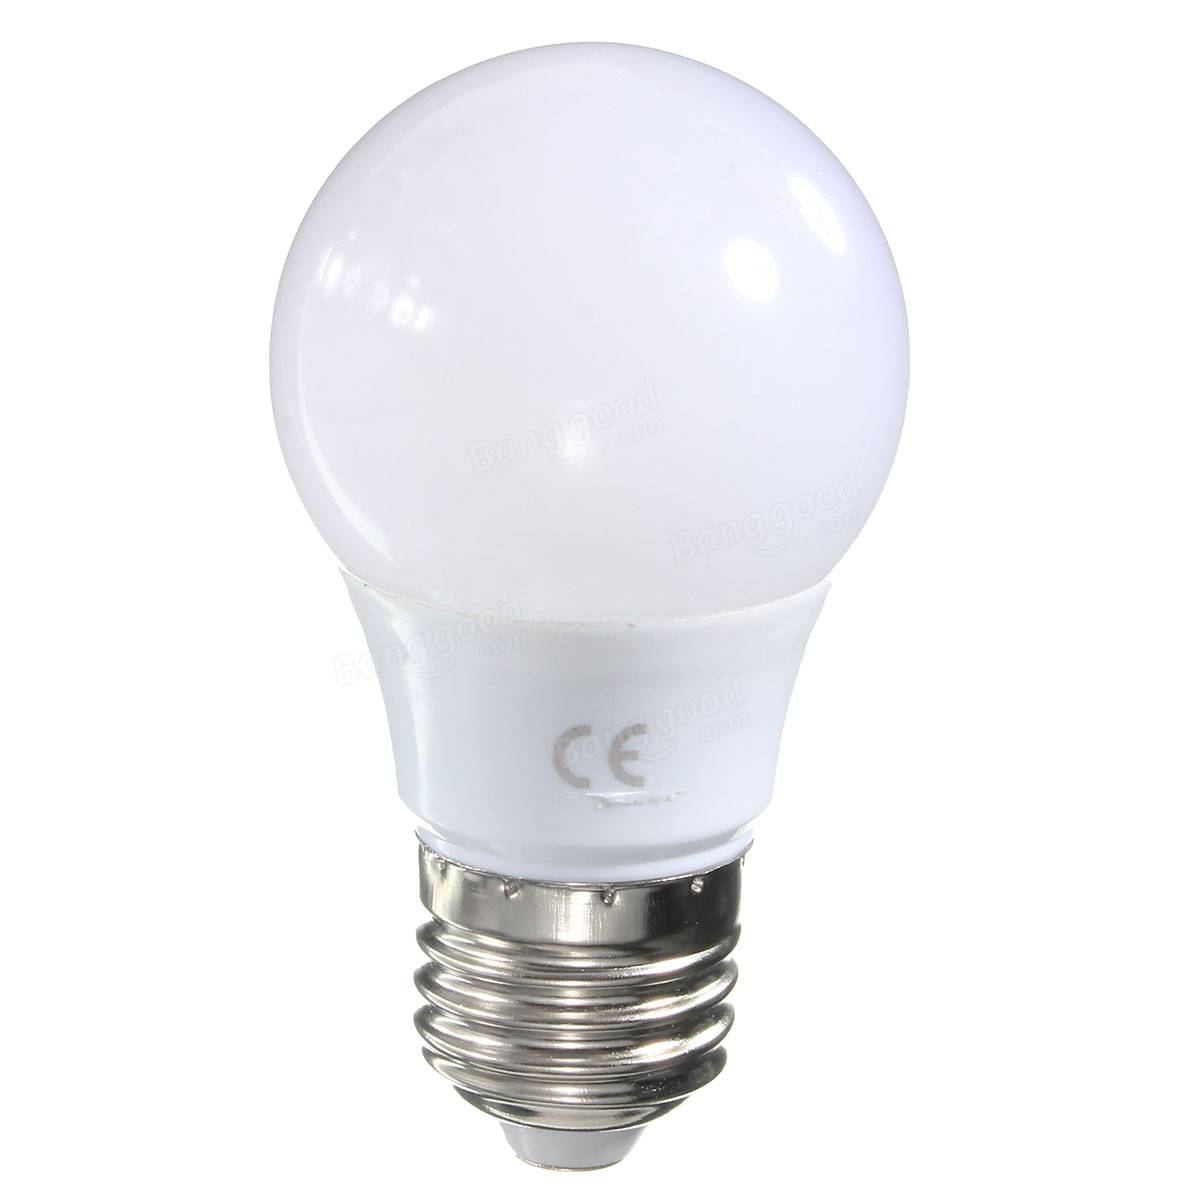 Original E27 3w 20 Smd 2835 Led Warm White White Globe Lamp Light Bulb Ac85 265v Blog Power